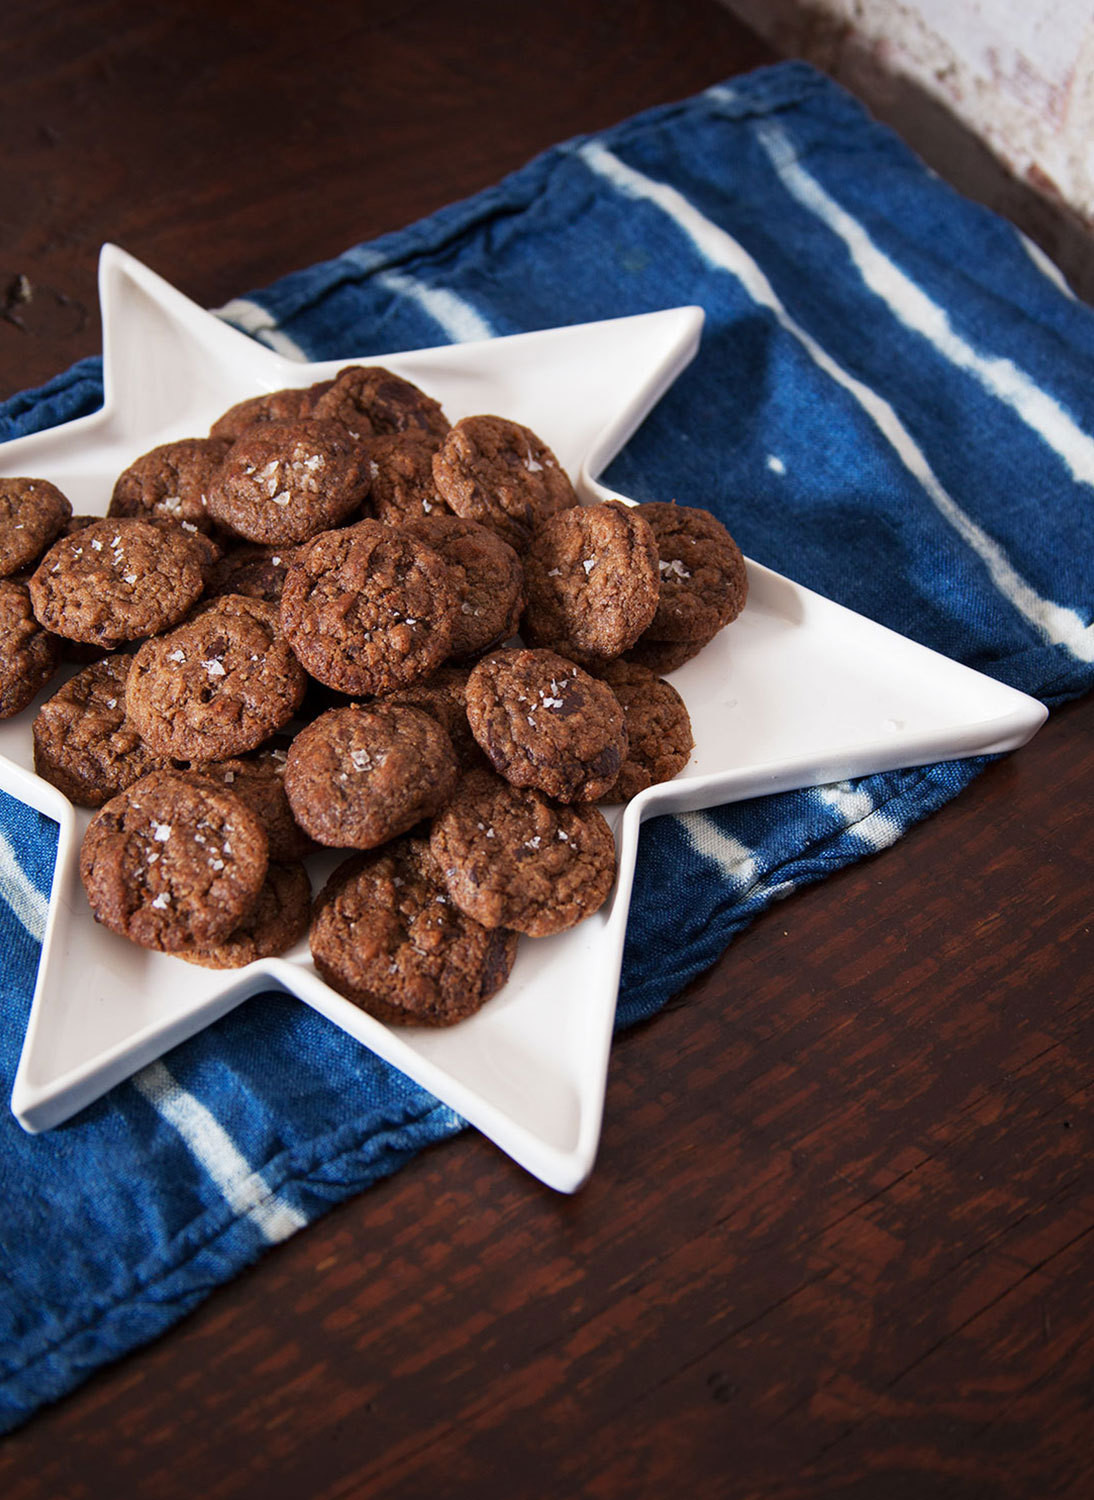 Dark chocolate chip cookies made with Ethiopian teff flour have more fiber than your supermarket variety.